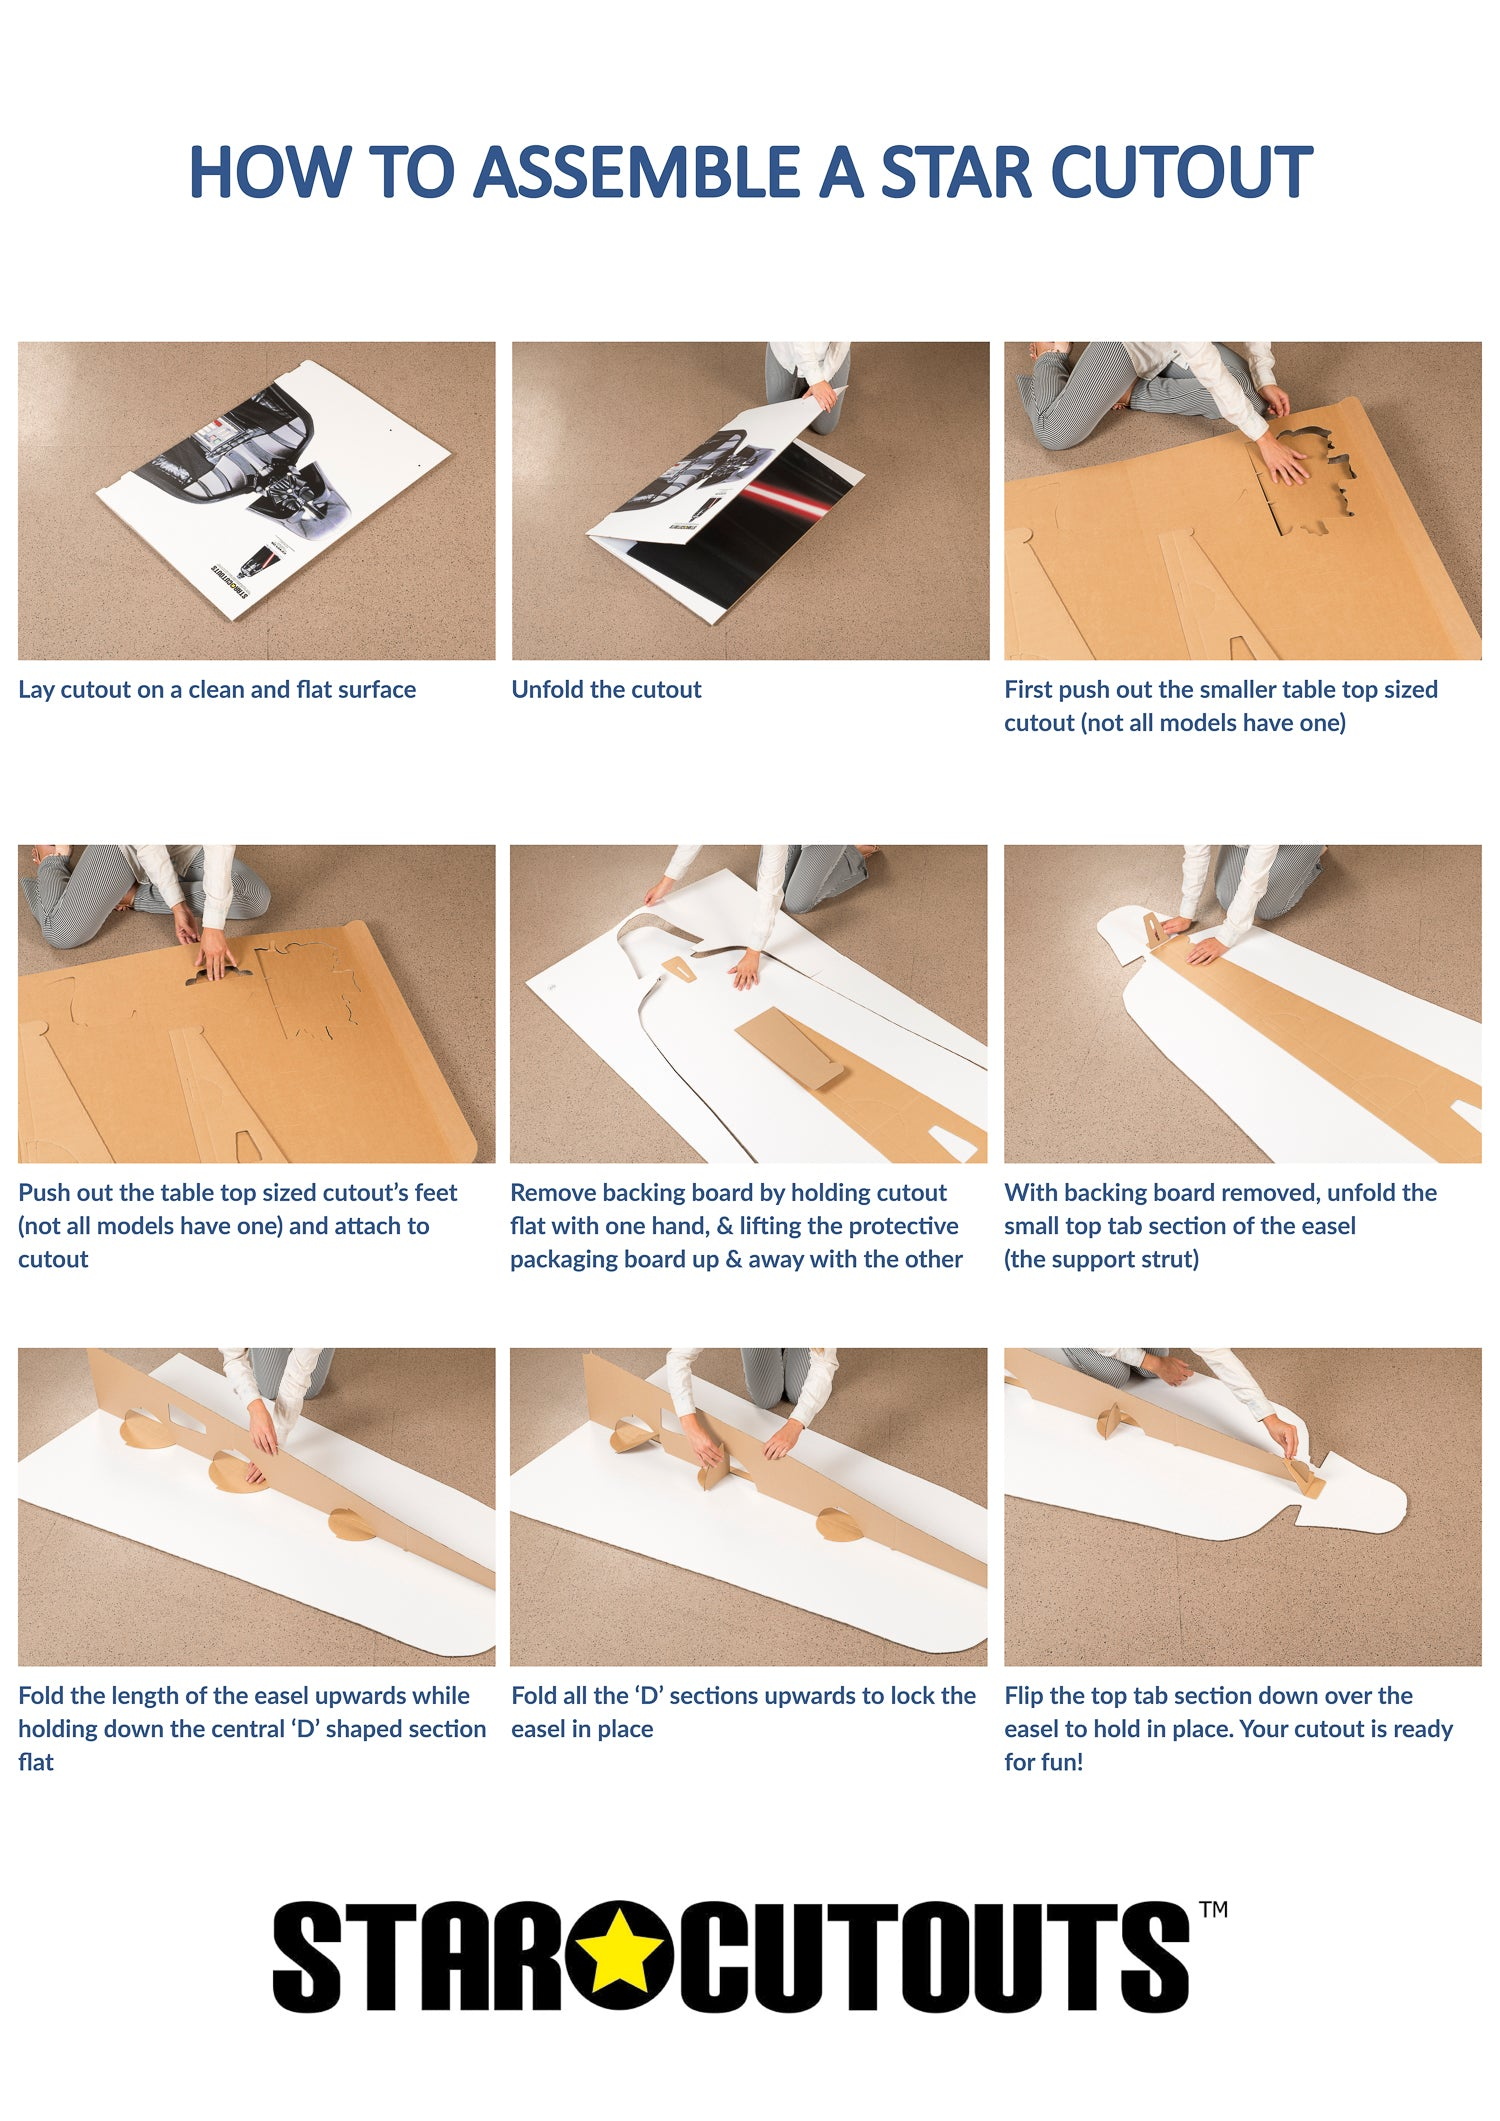 Standard Assembly Instructions for Cardboard Cutouts